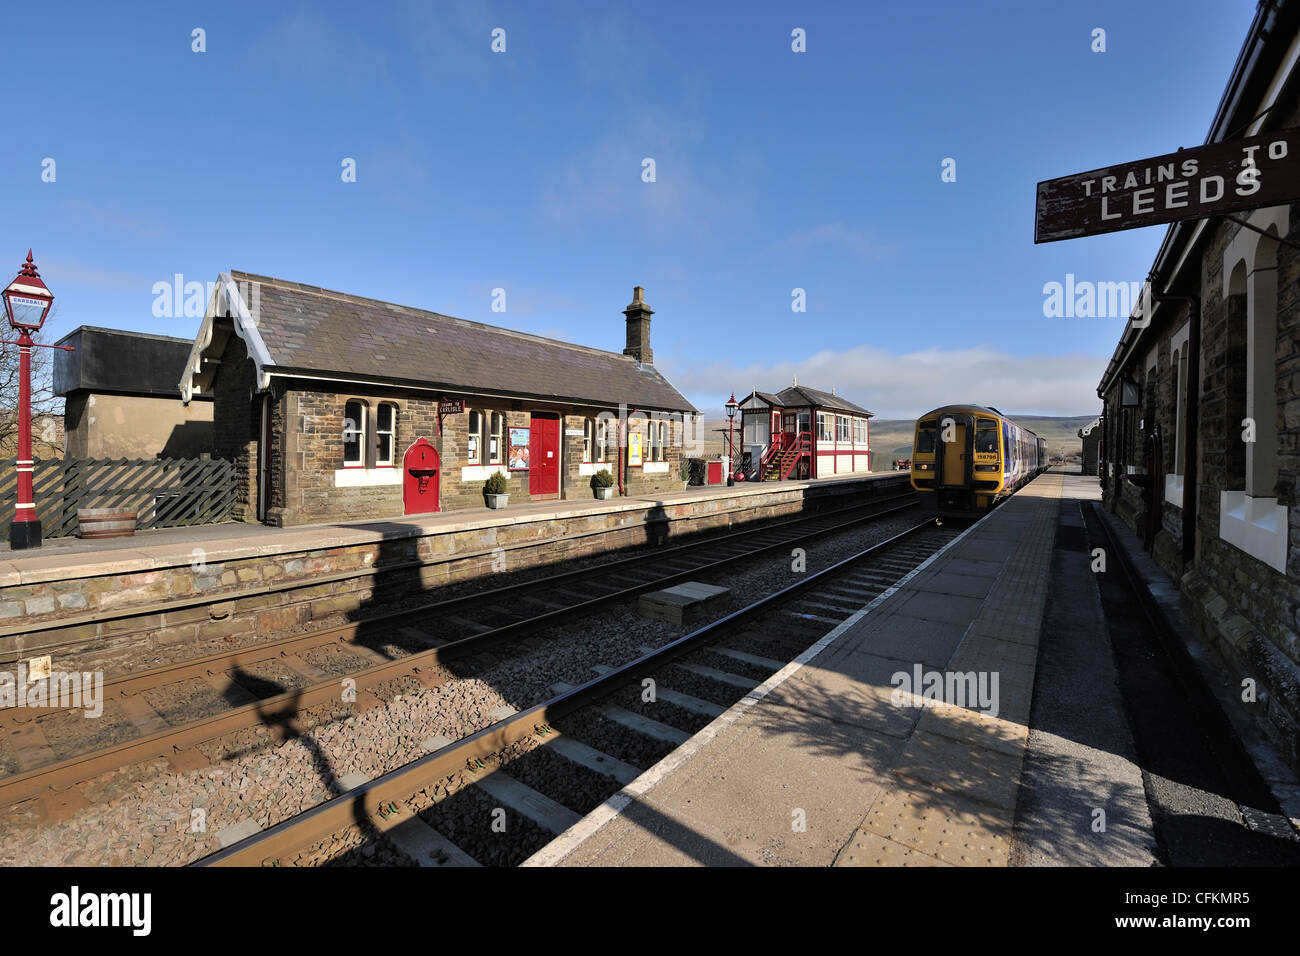 A Northern Rail train approaching Garsdale station, Carlisle to Settle railway line, Yorkshire Dales, England - Stock Image